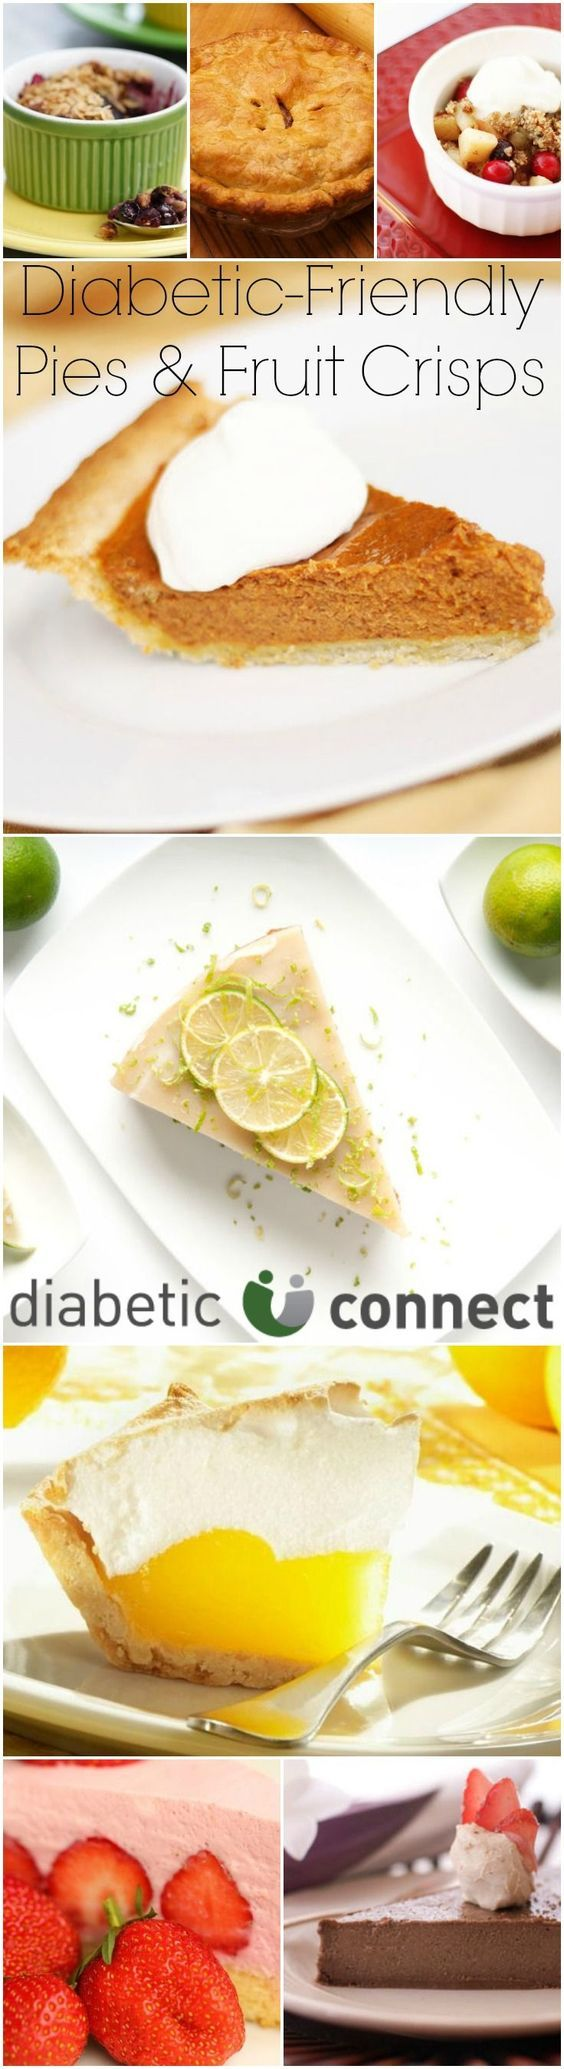 Summer, fall or winter pies and fruit crisp taste great any time of the year. Pies can be diabetic-friendly too, with recipes for strawberry, chocolate, pecan, lemon and berry. For more diabetic-friendly desserts visit diabeticconnect.com #dessert #diabetesdiet